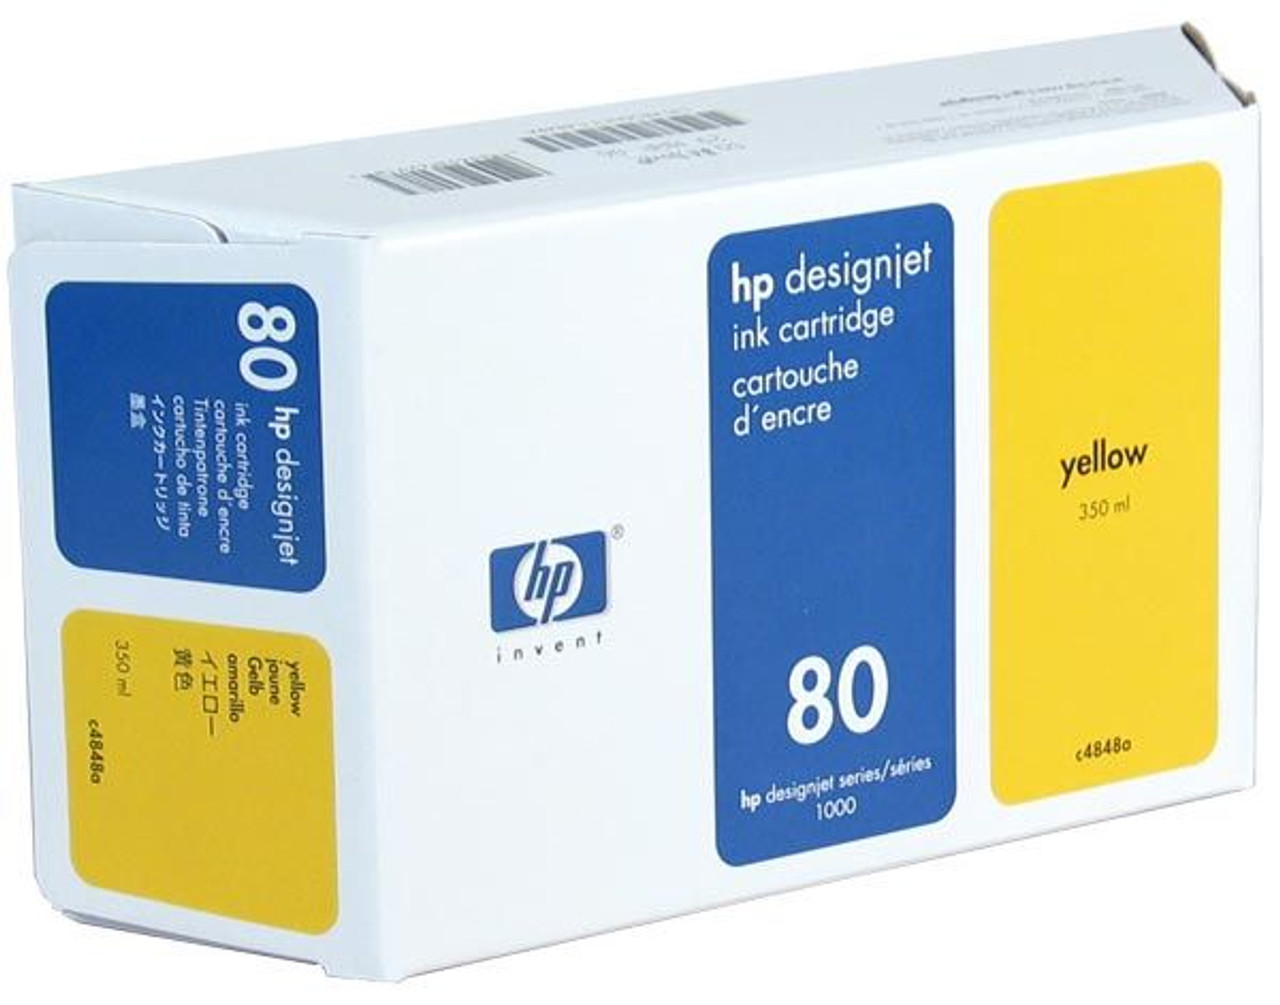 Image for HP 80 Yellow Ink Cartridge 350ml (C4848A) CX Computer Superstore